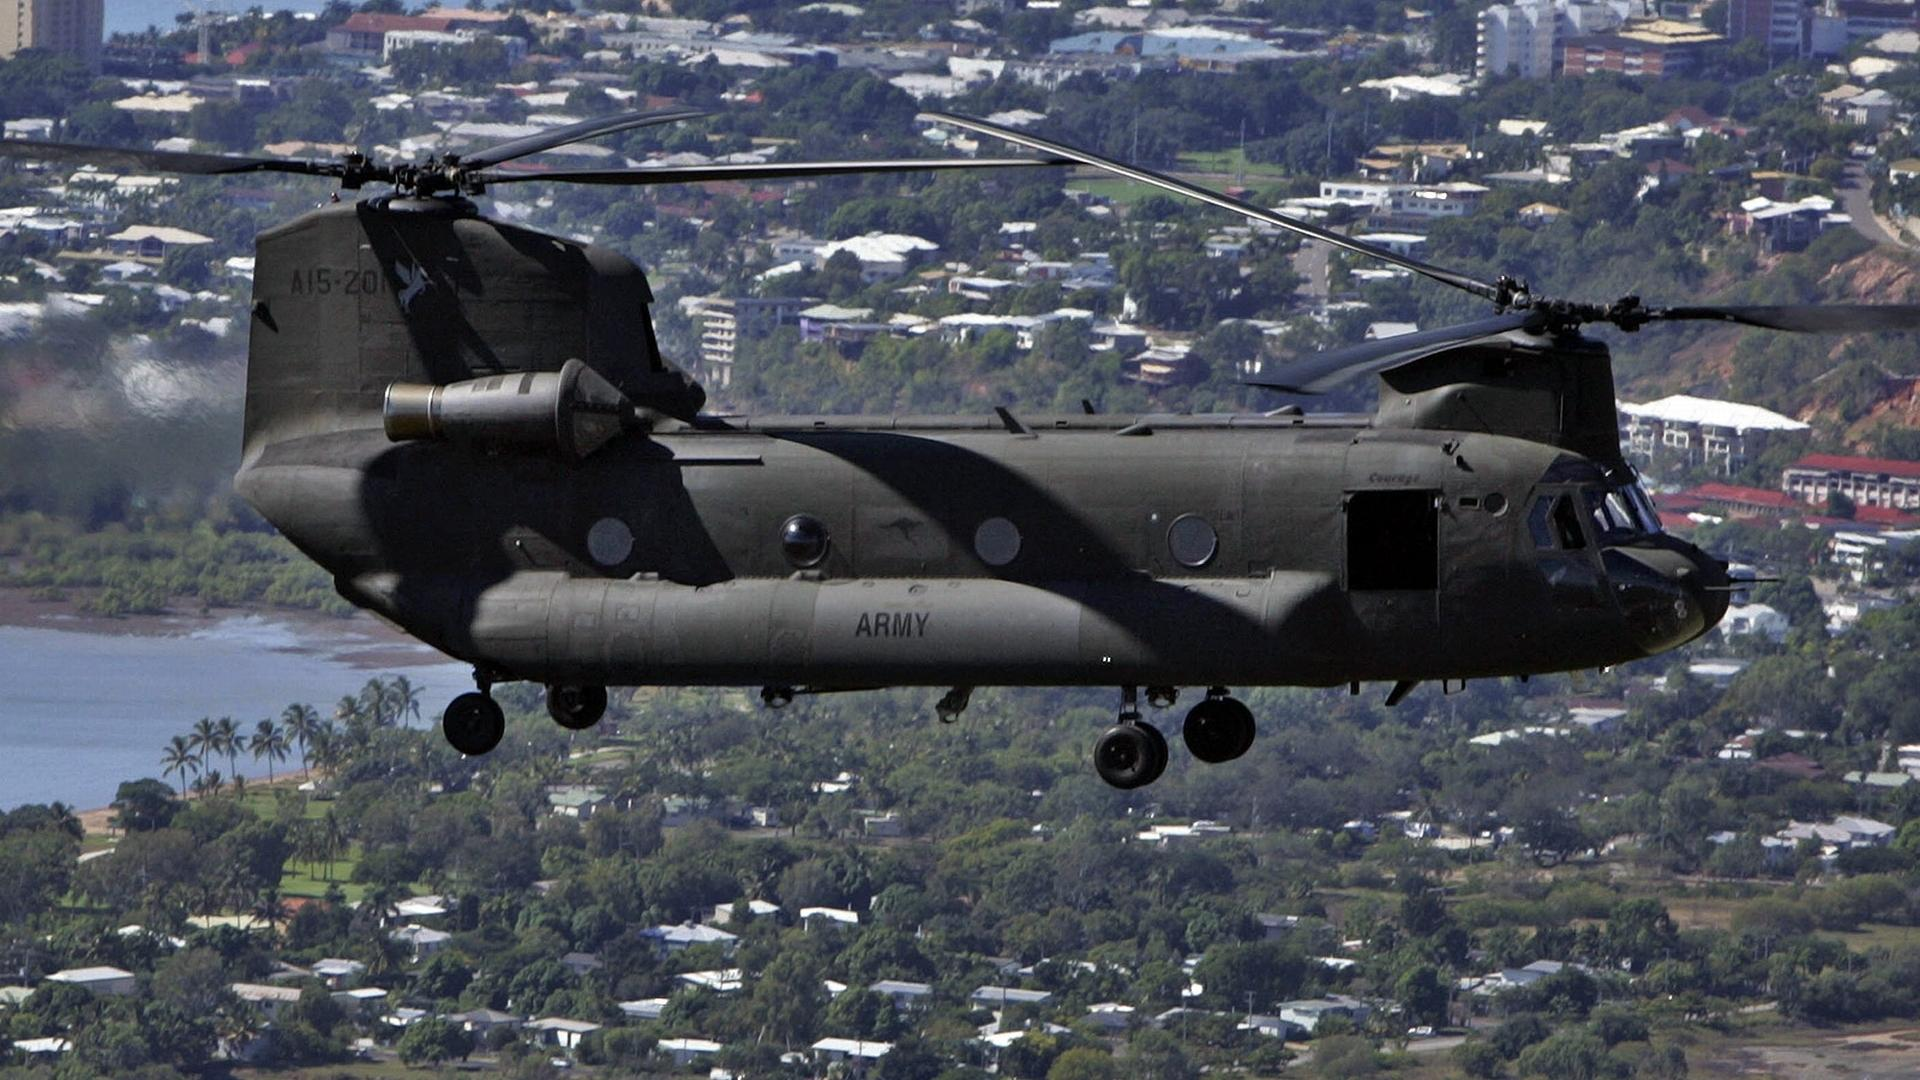 Boeing CH-47 Chinook wallpapers HD quality